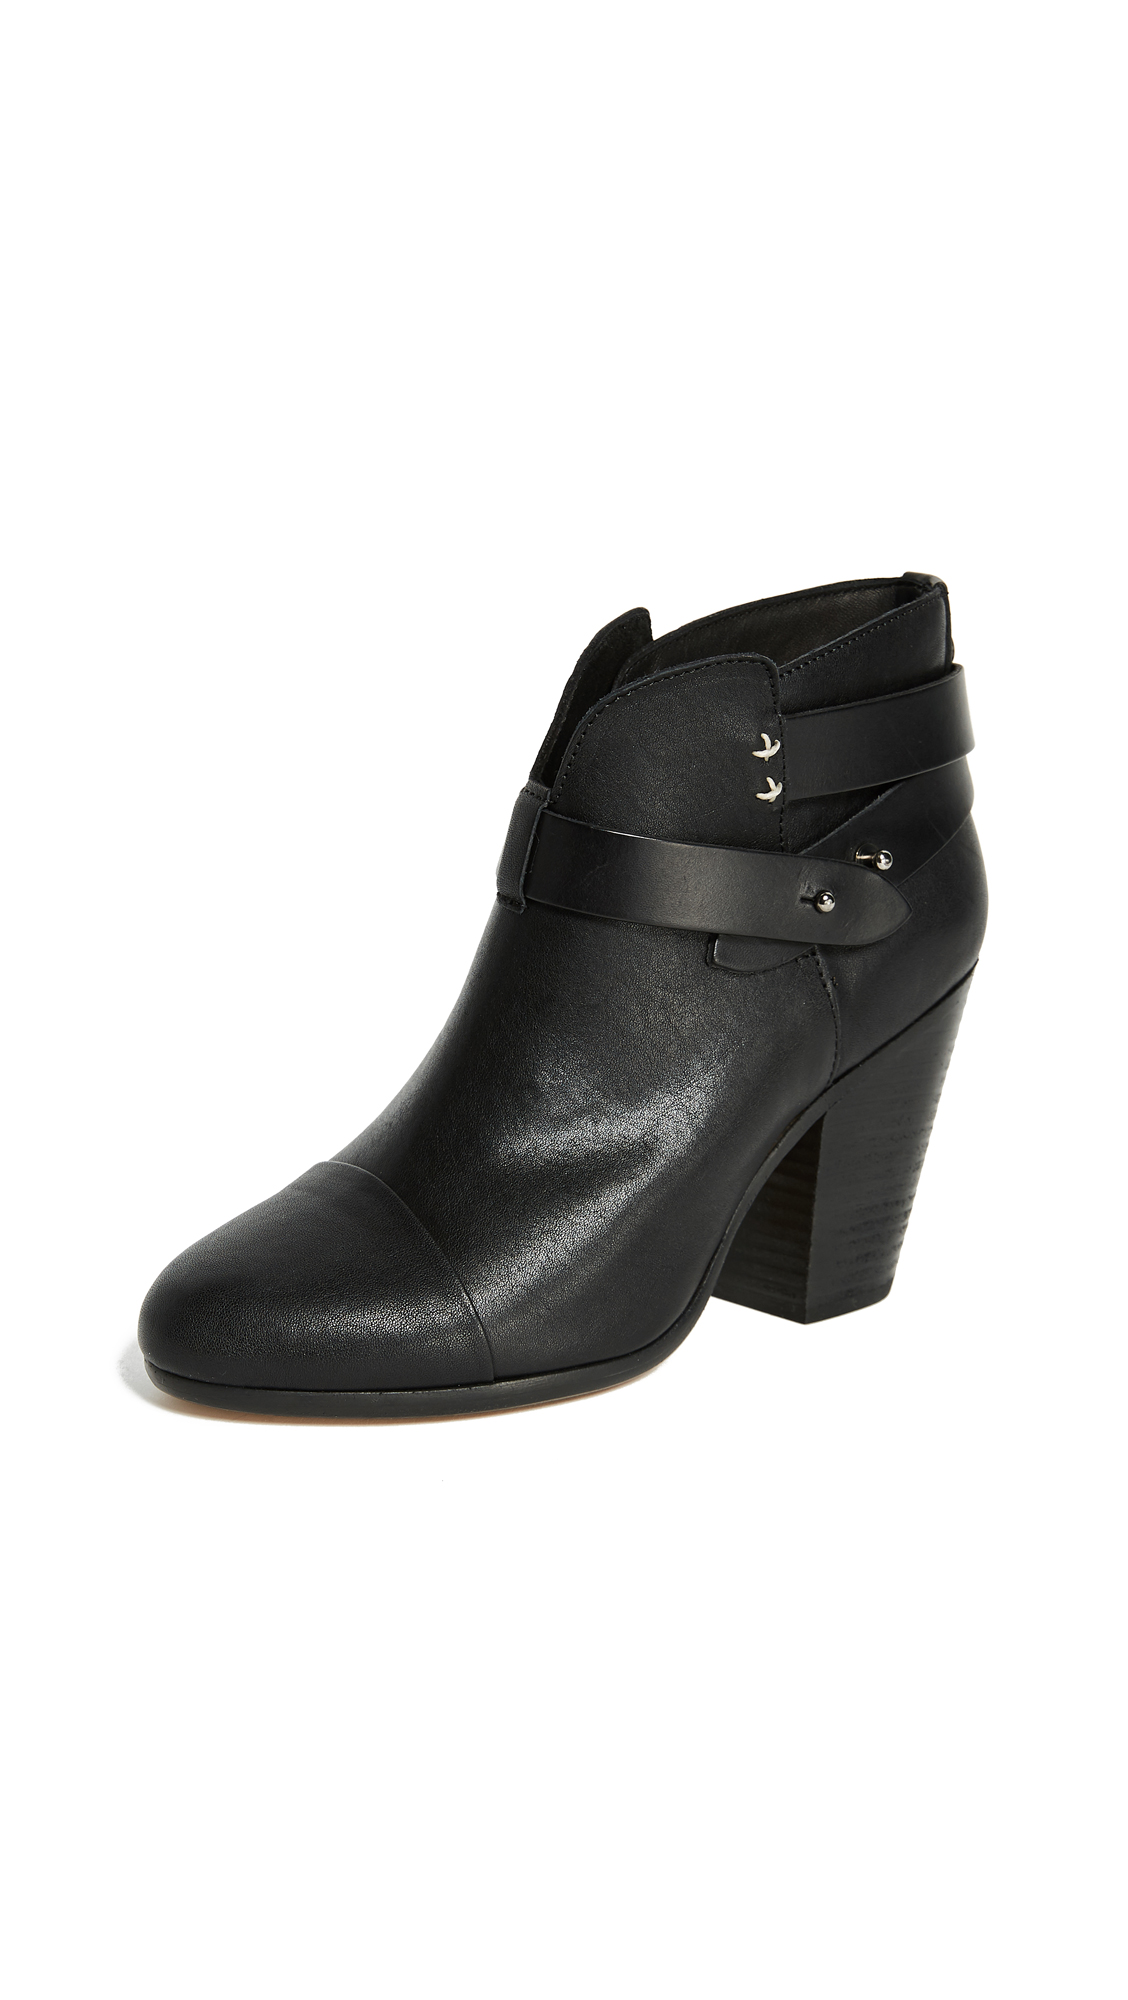 Rag & Bone Harrow Booties - Black